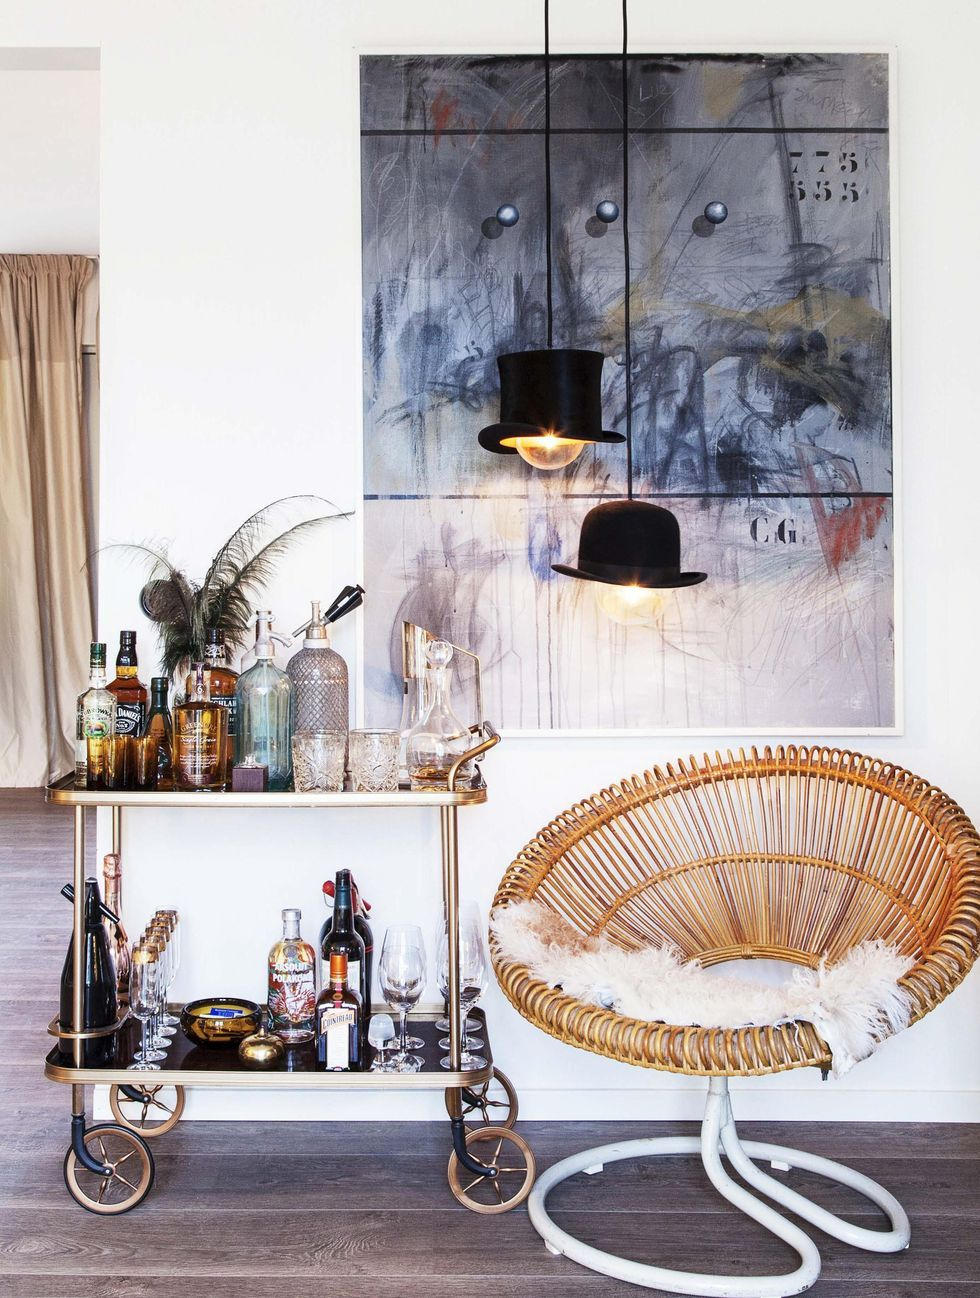 12 Ideas For Making Your Bar Cart Truly Swanky Hunker Co